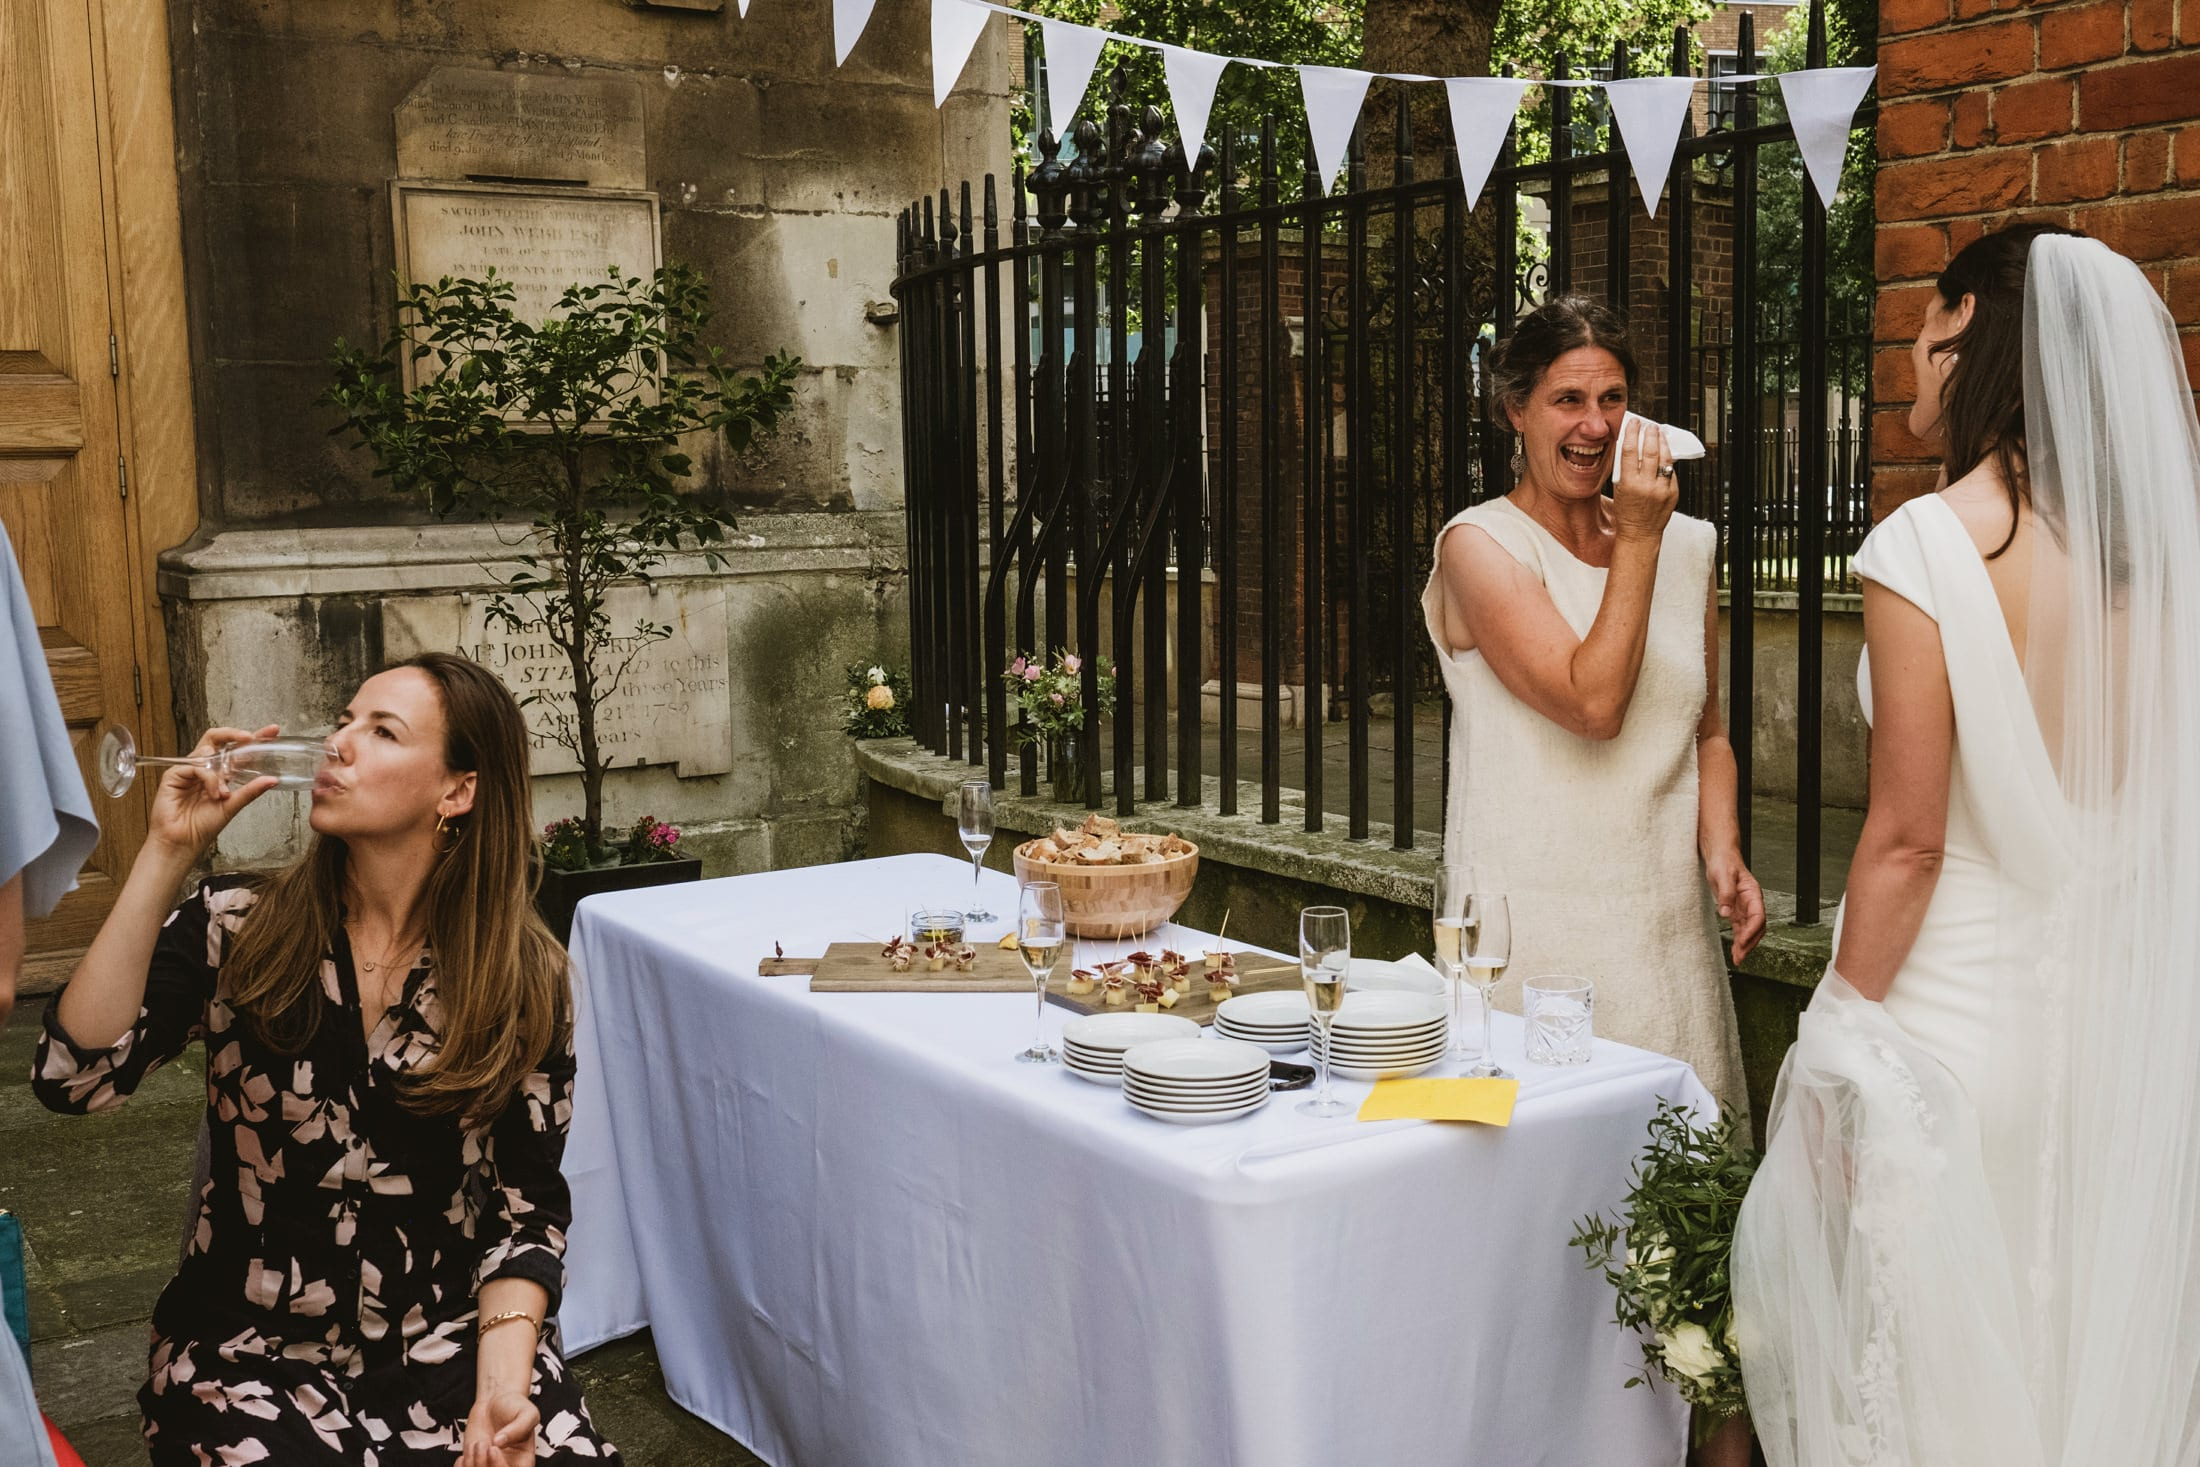 Female wedding guest holds a tissue to her eye as she laughs and cries with the bride. They stand beside a white clothed table of food, another seated female guest taking a drink of champagne beside it.